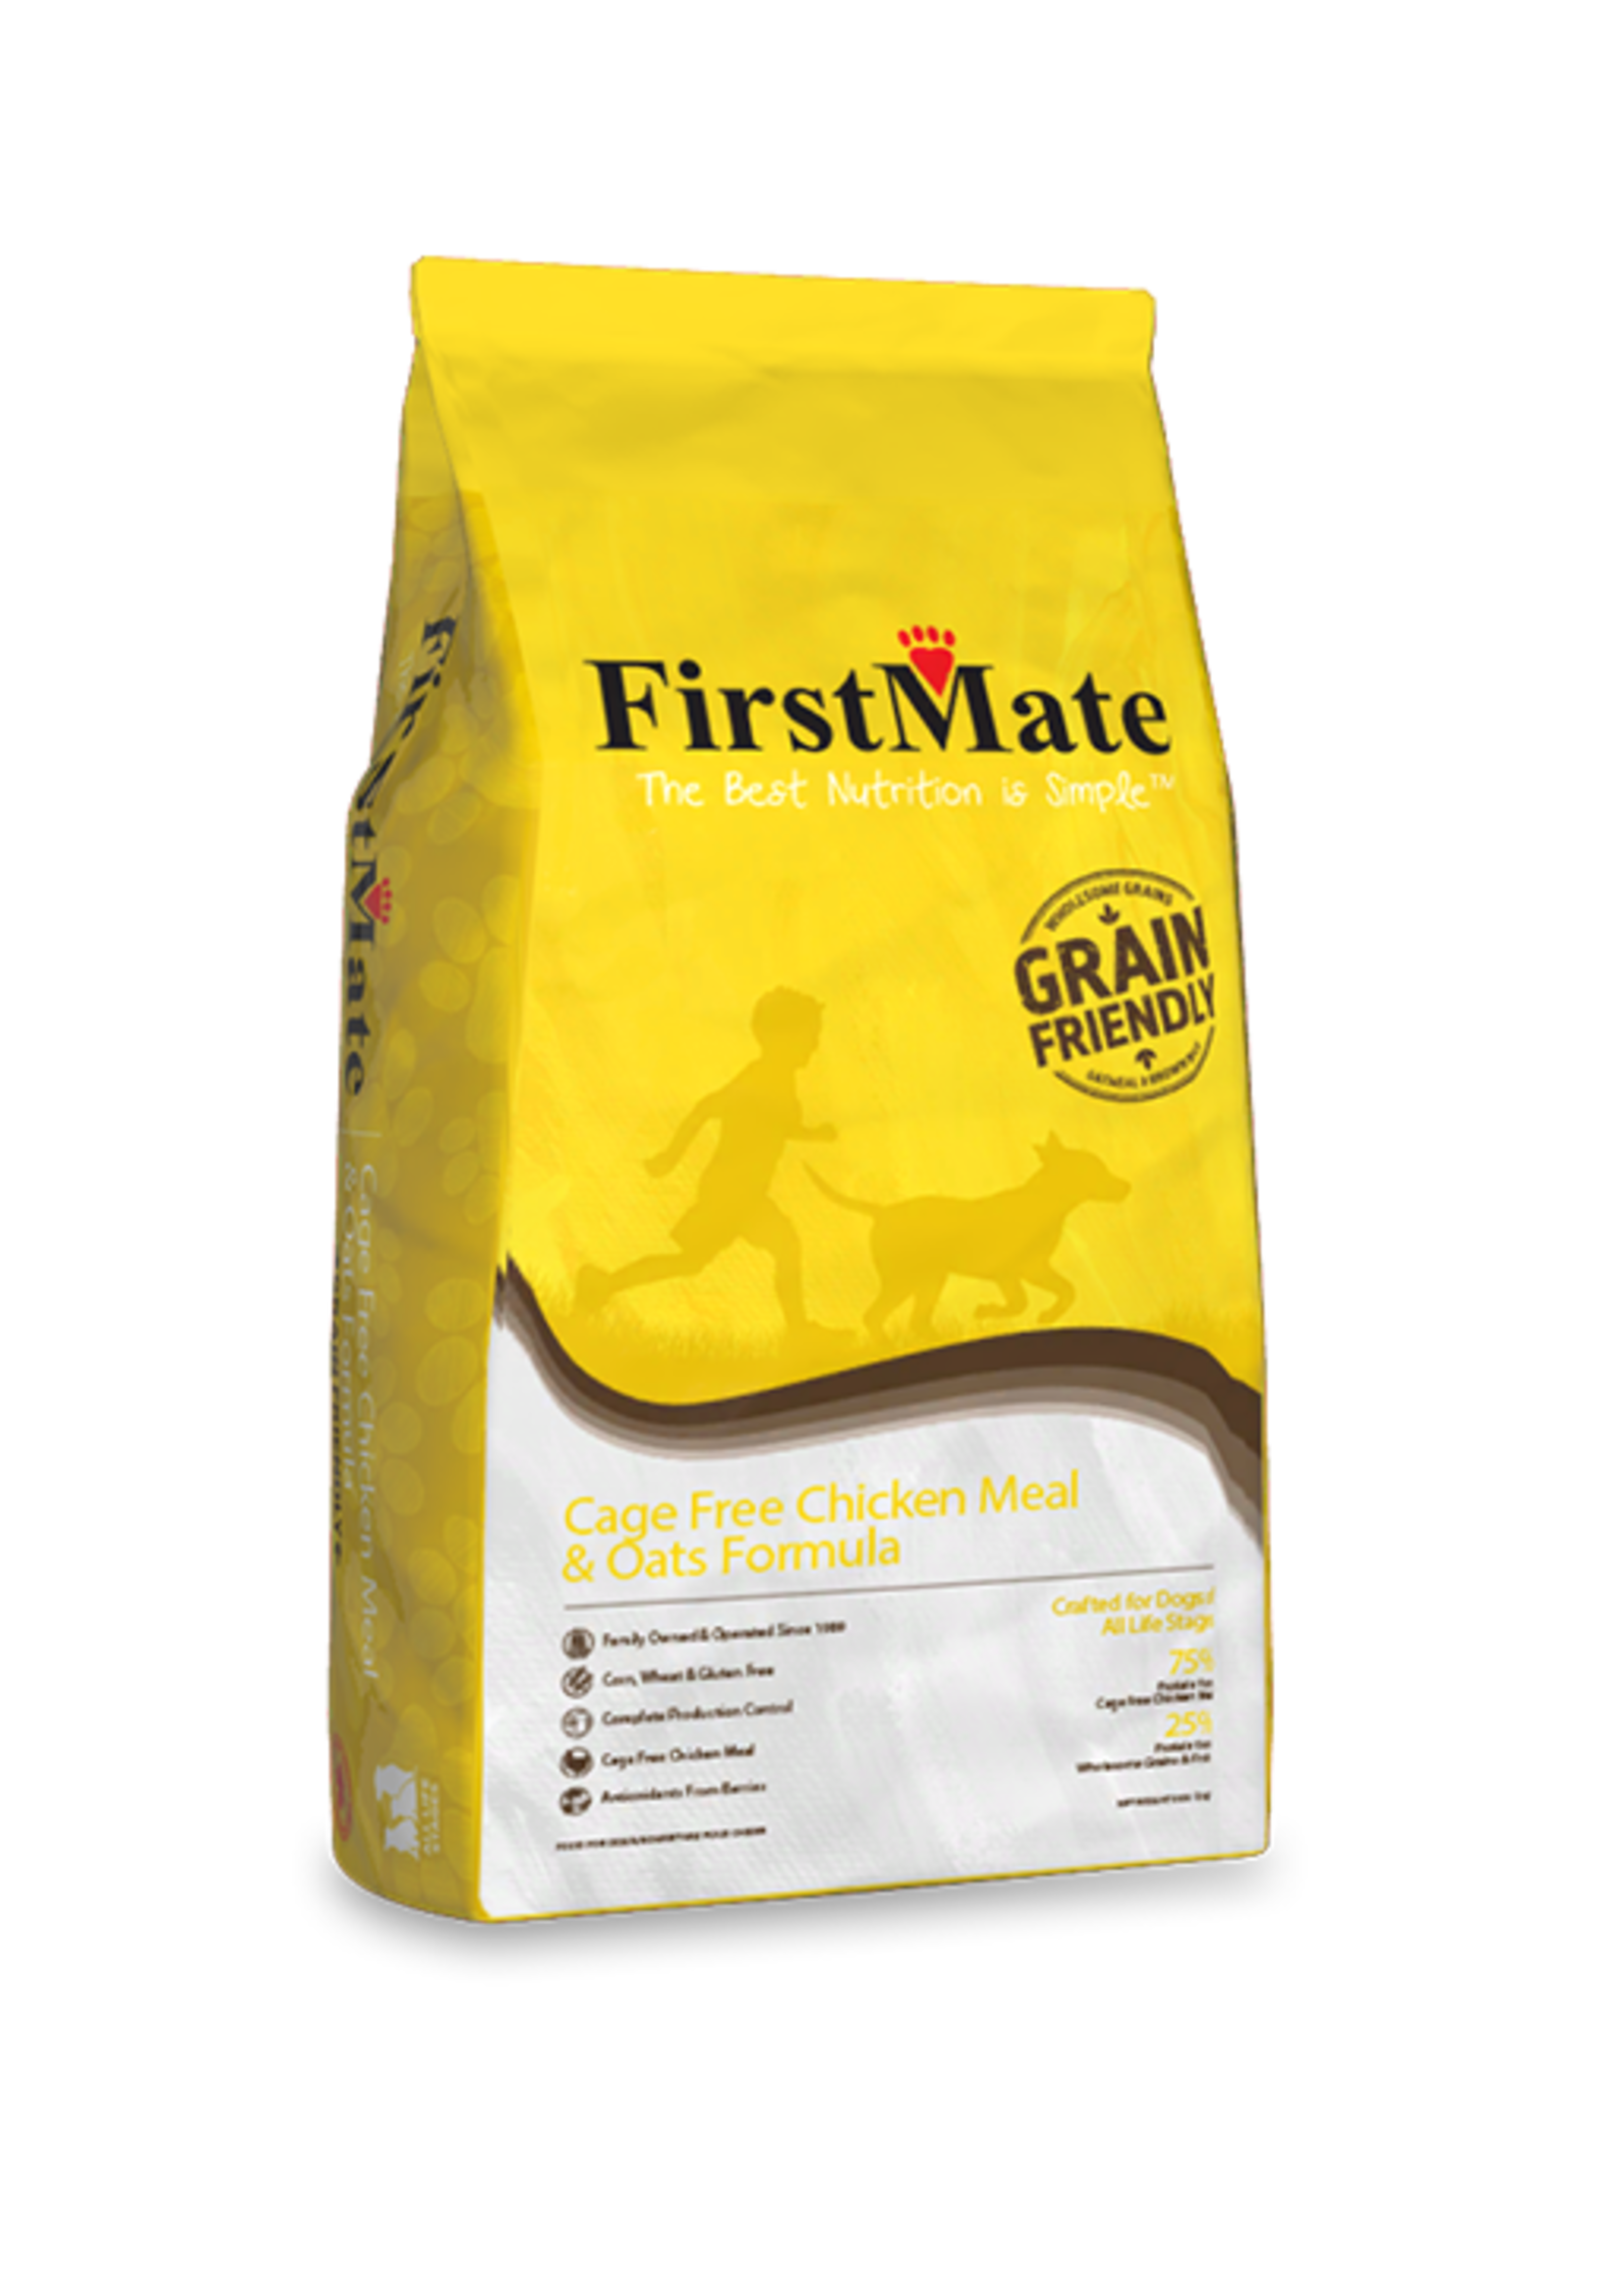 FirstMate FirstMate Cage Free Chicken Meal & Oats Formula 5lbs